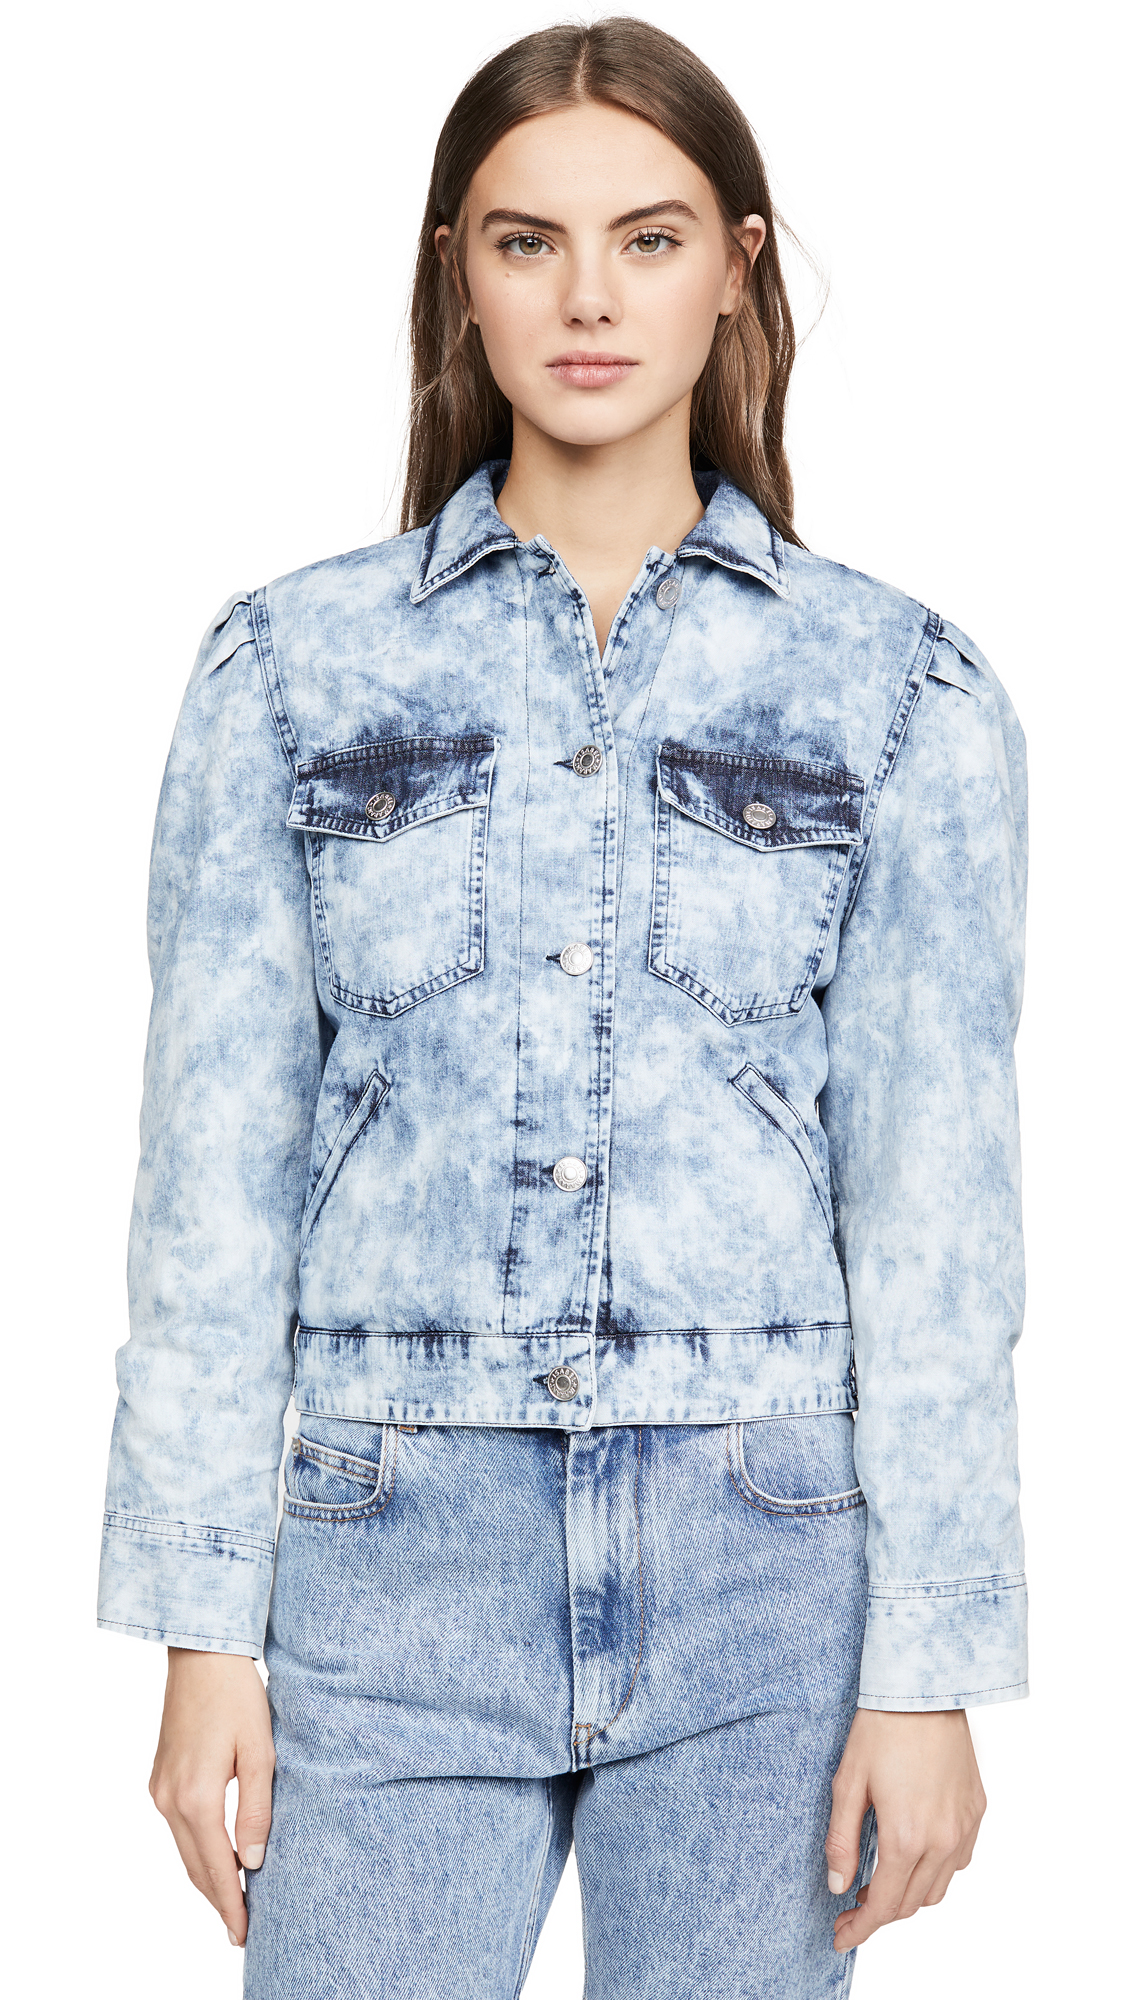 Buy Isabel Marant Etoile Iolinea Jacket online beautiful Isabel Marant Etoile Clothing, Jackets